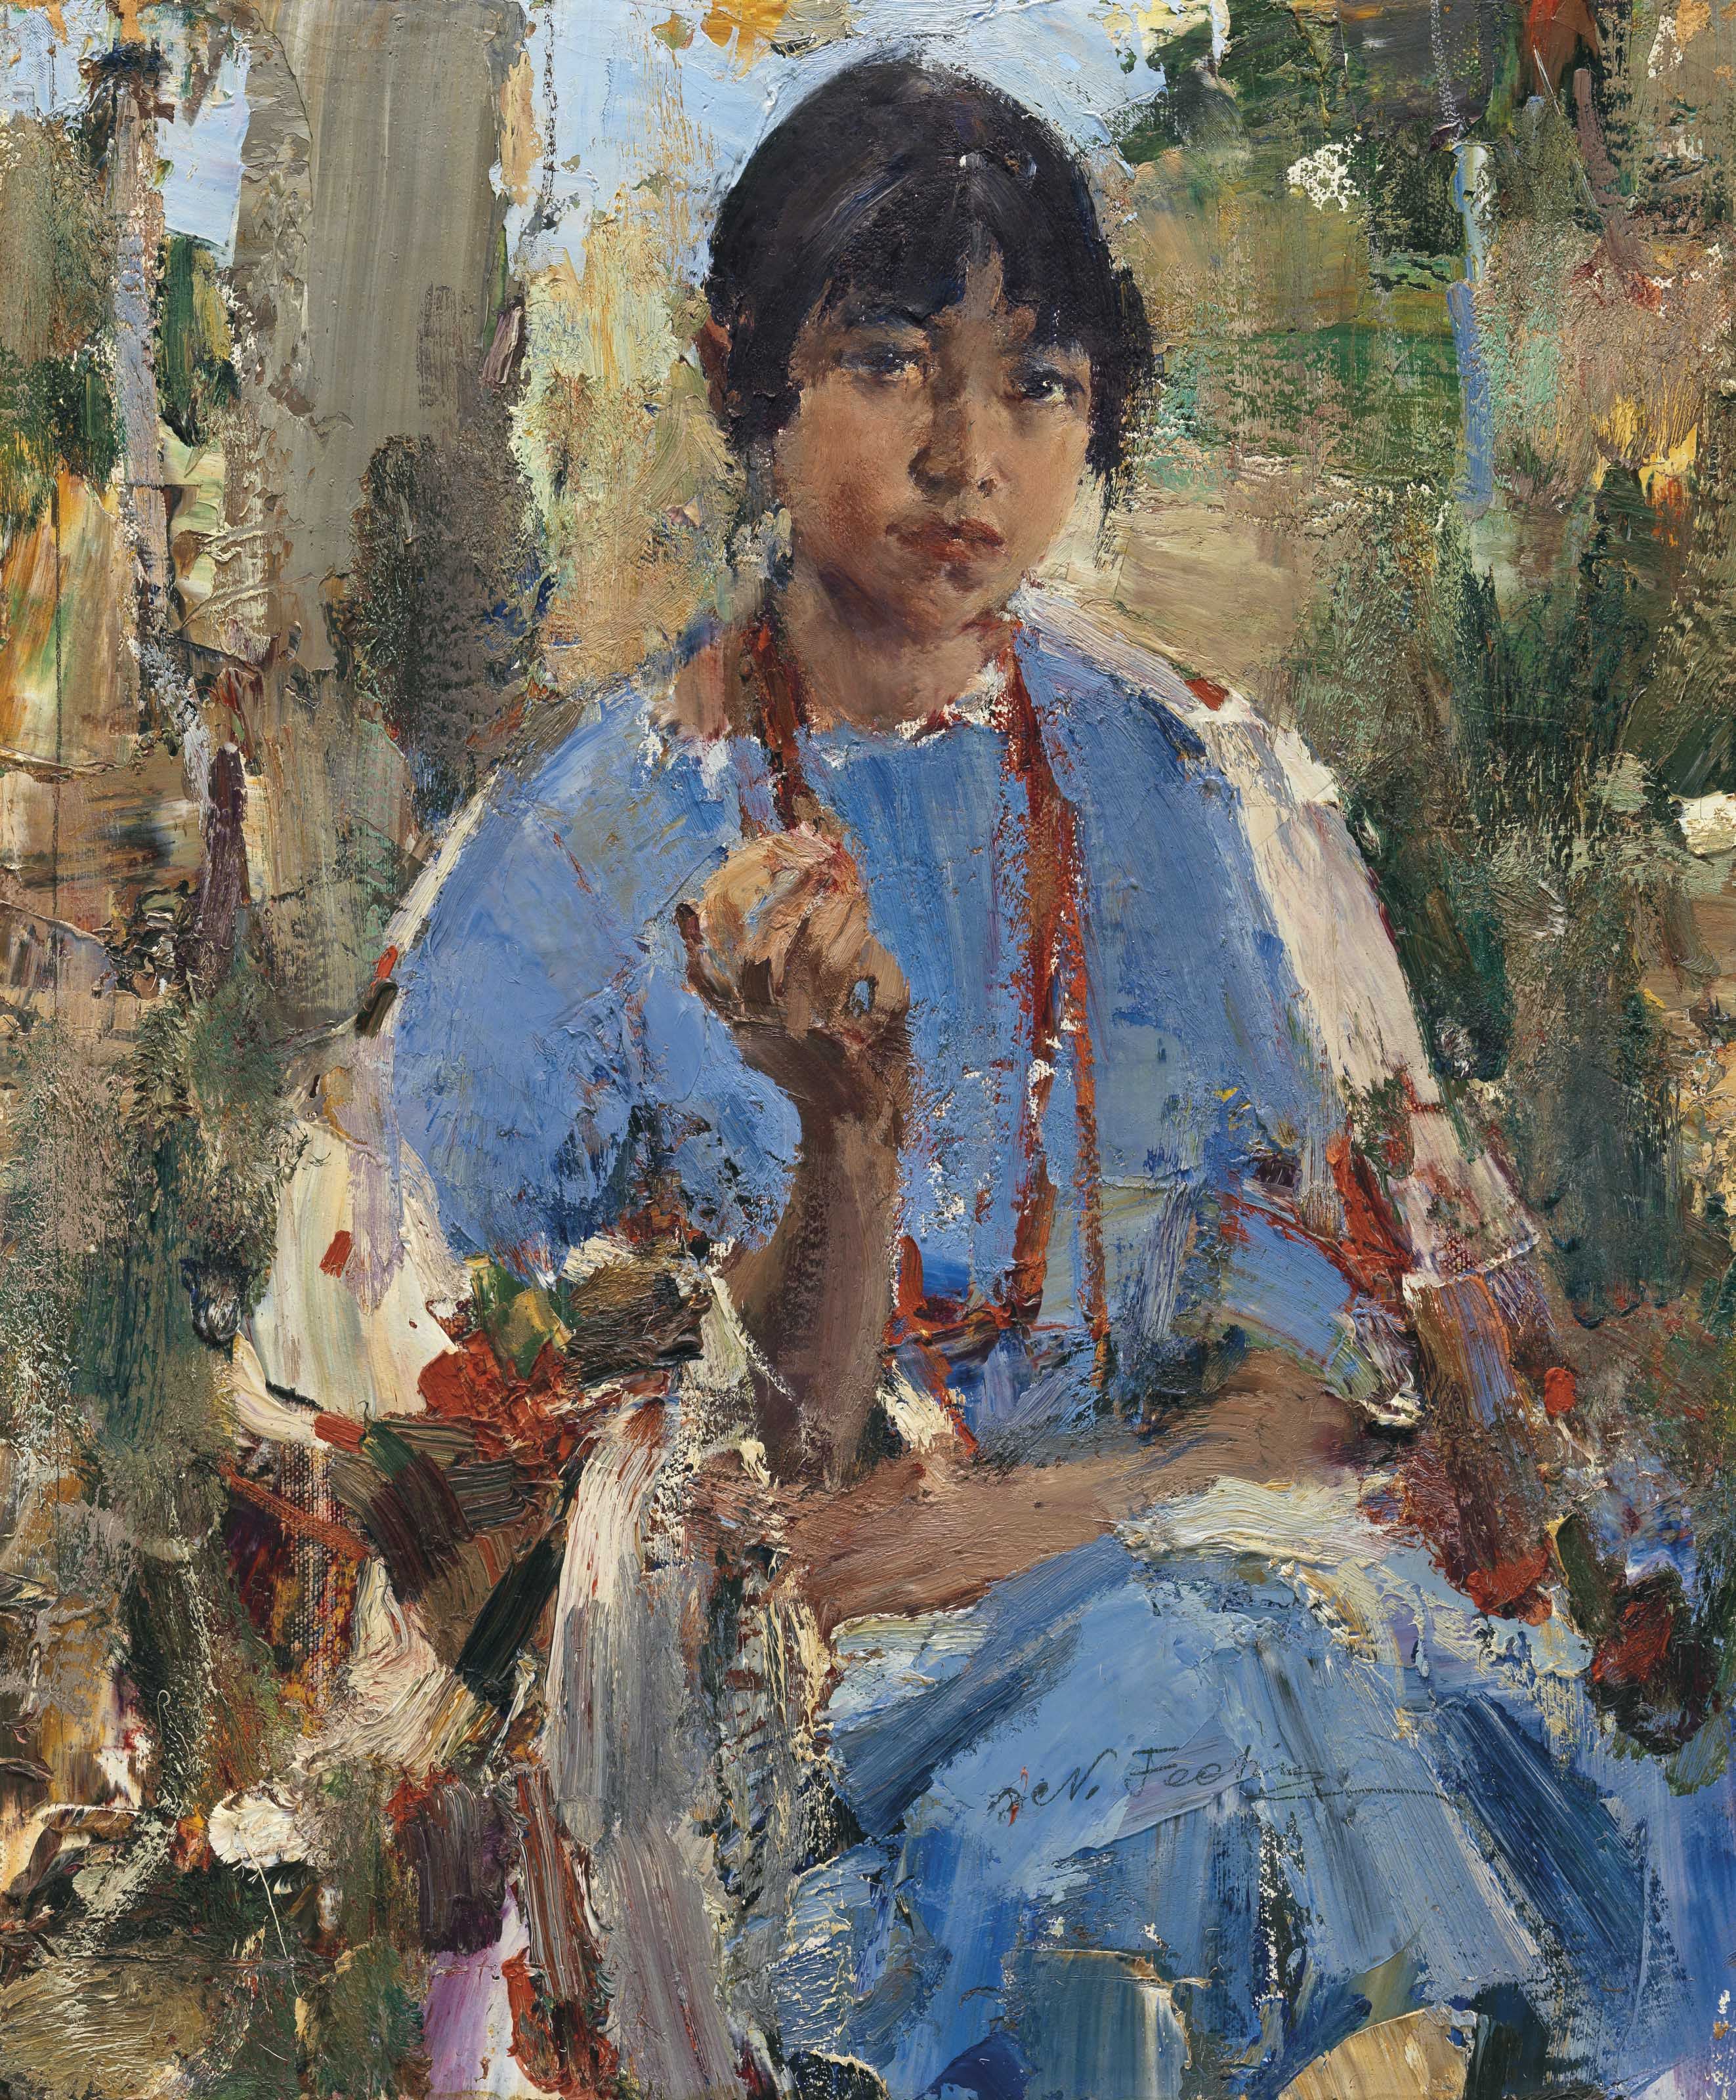 Nicolai fechin 1881 1955 indian girl in blue dress for Nicolai fechin paintings for sale